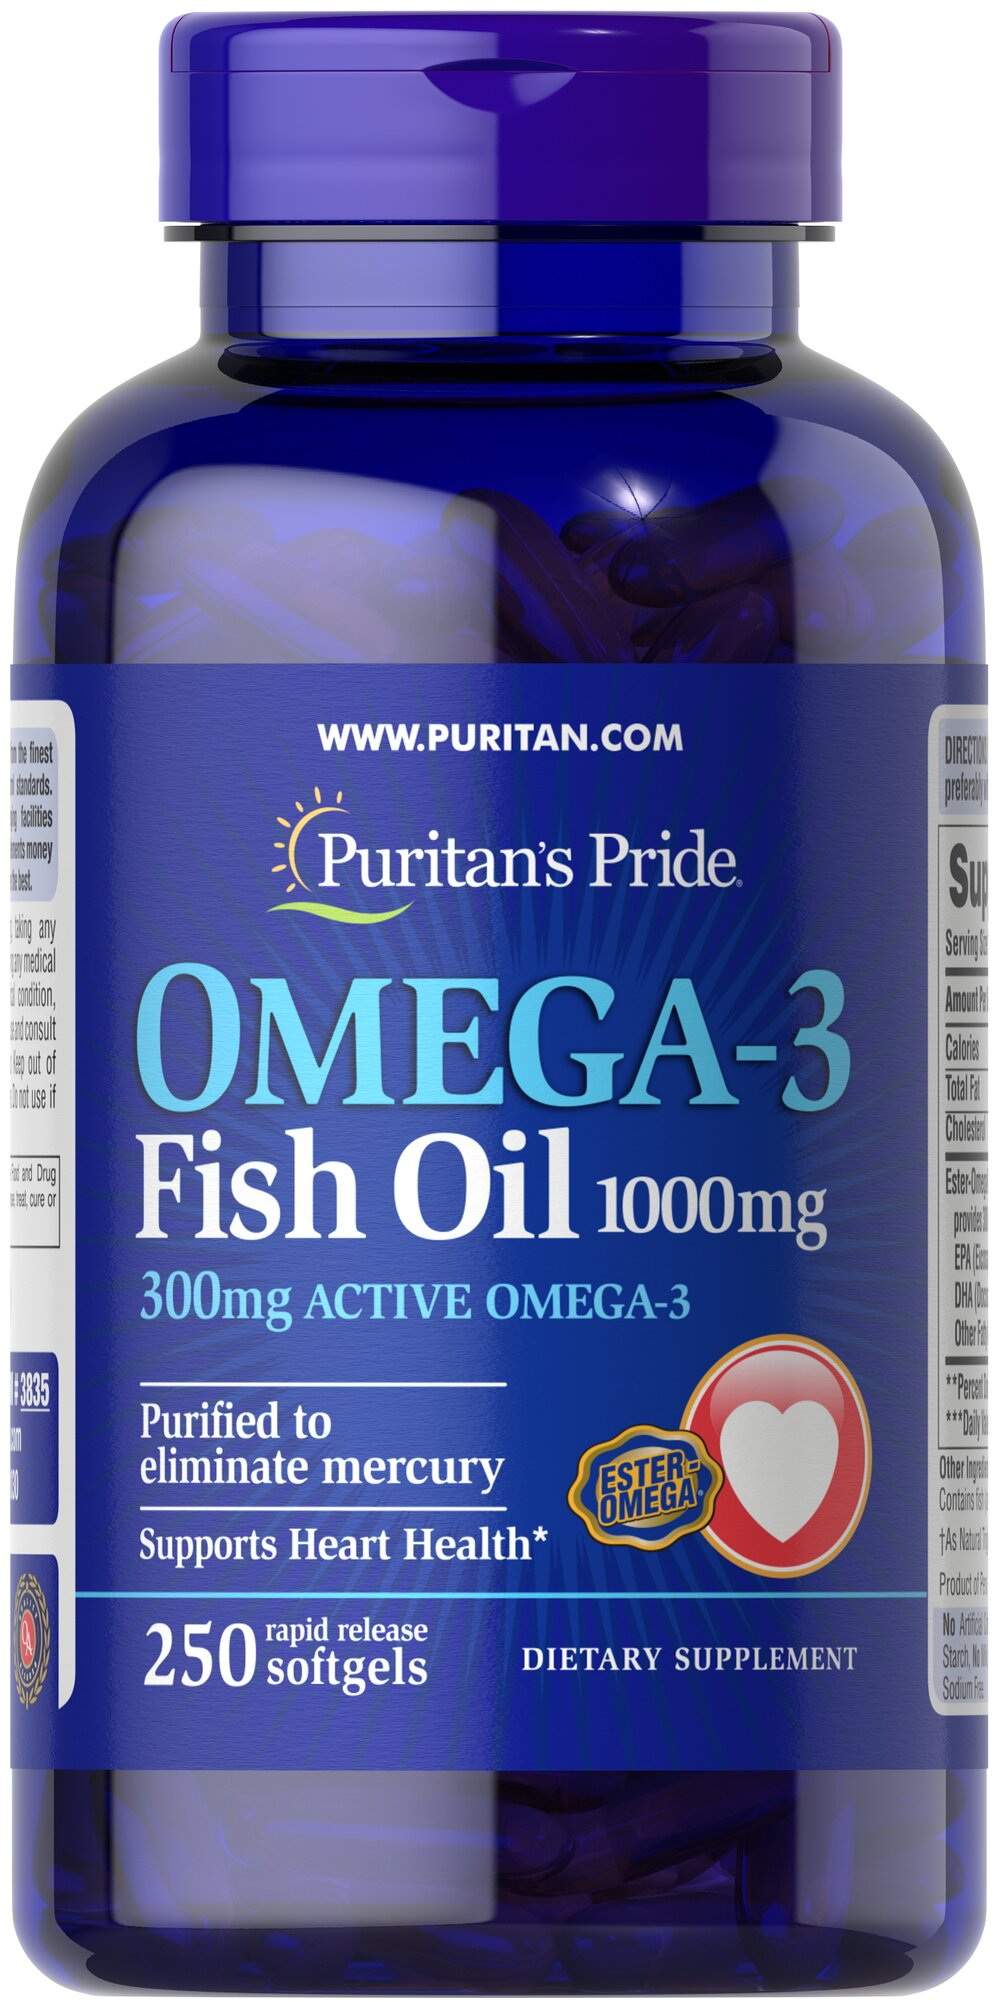 Omega-3 Fish Oil 1000 mg (300 mg Active Omega-3)  250 Softgels 1000 mg $26.99